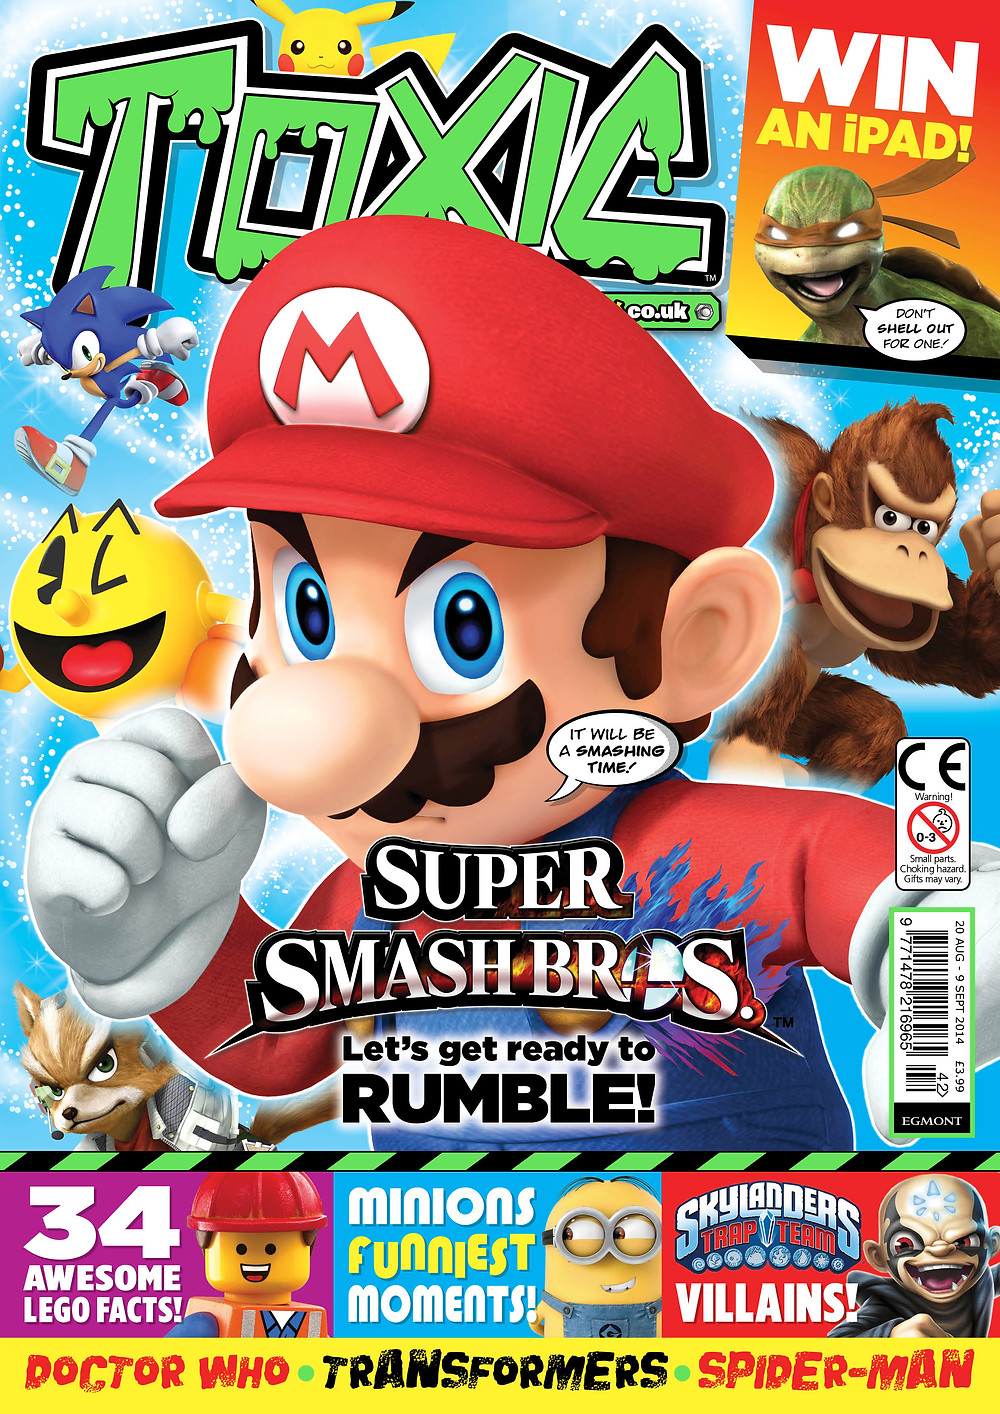 TOXIC issue 242